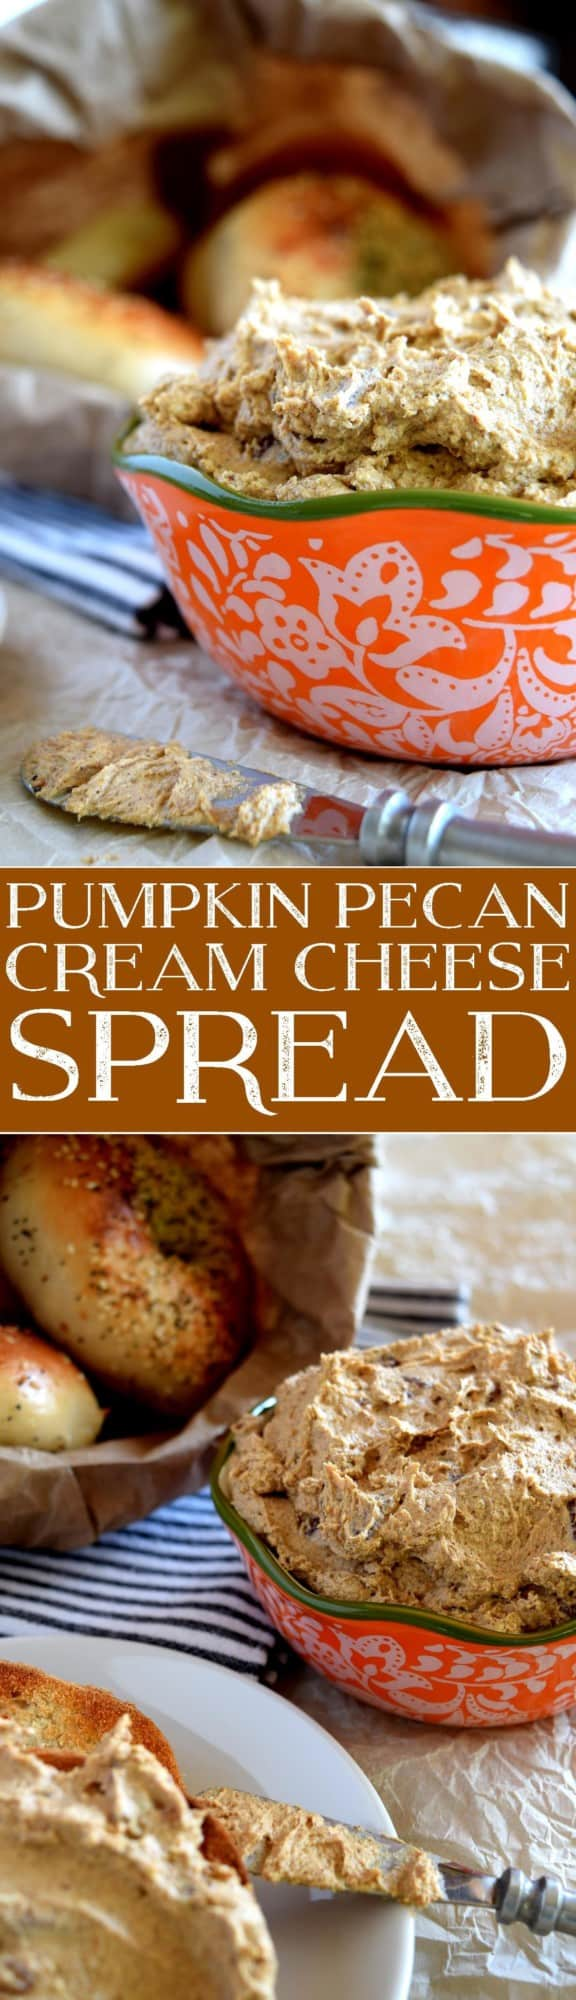 pumpkin-pecan-cream-cheese-spread